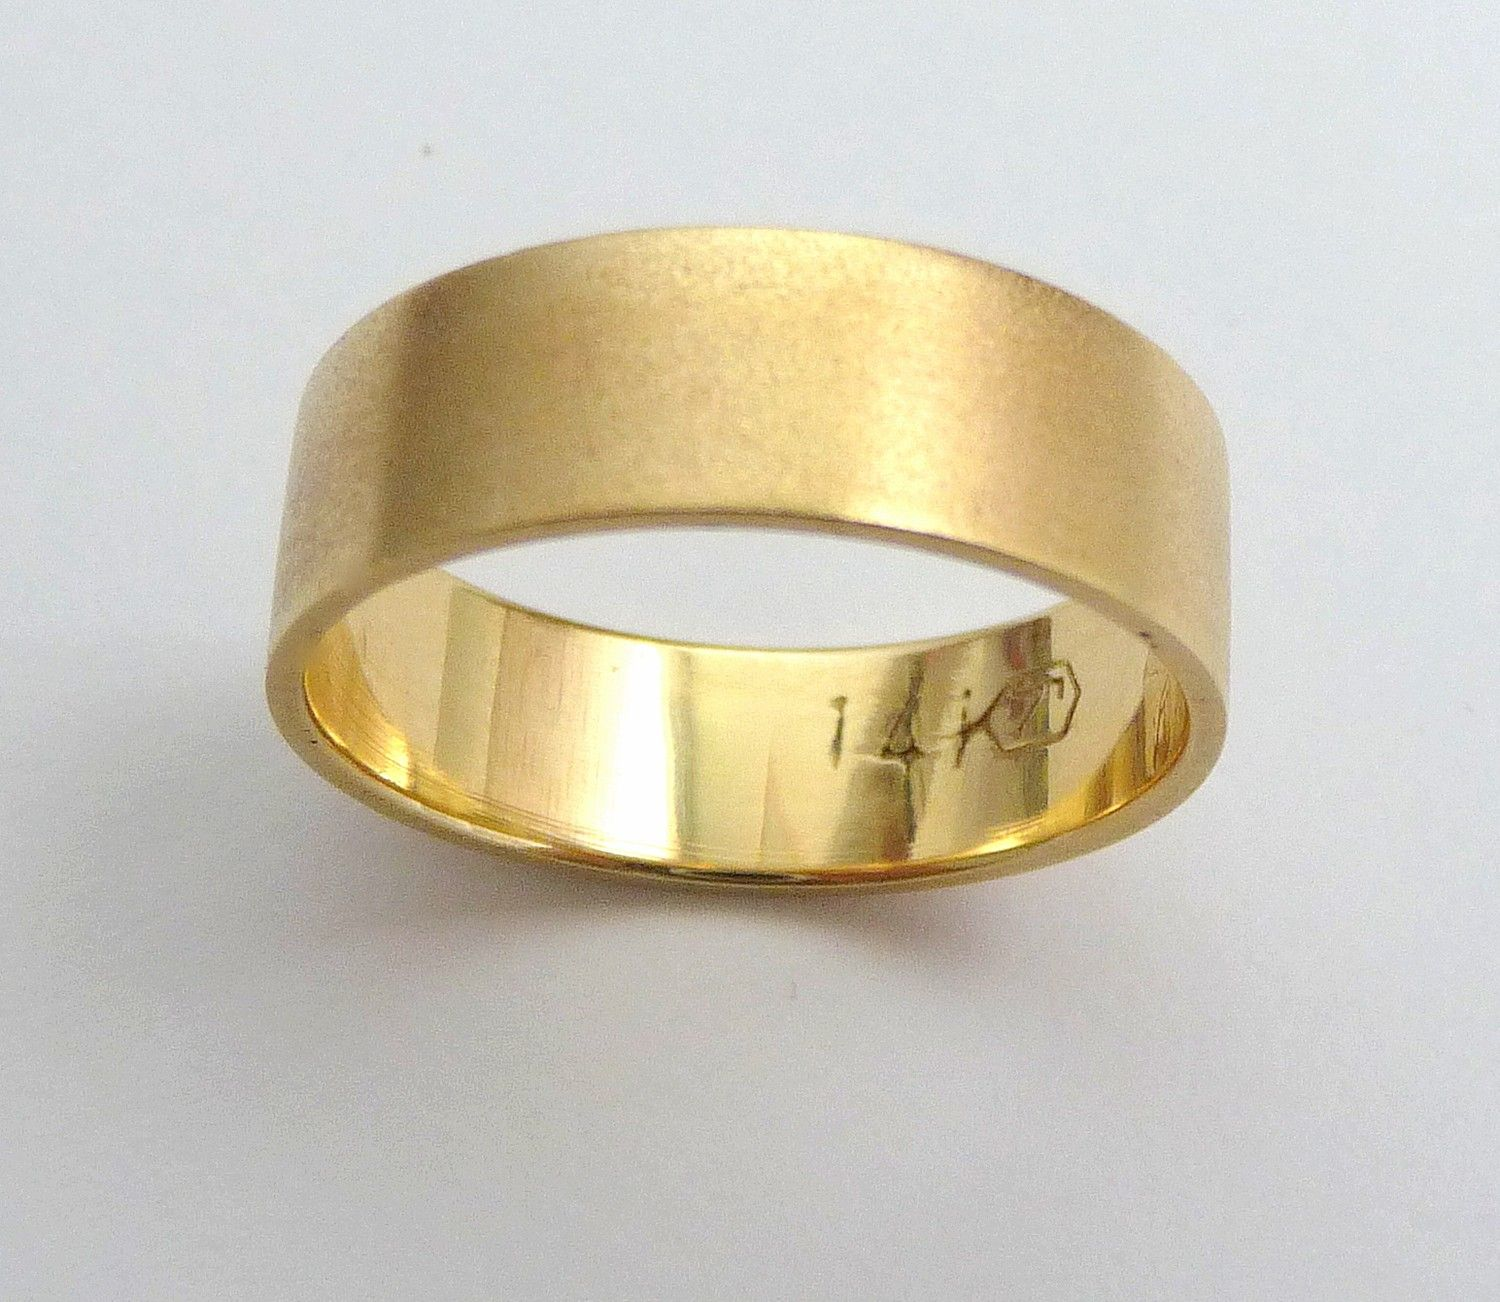 gold wedding band men wedding ring flat with sandblast finish classic wide - Gold Wedding Rings For Men